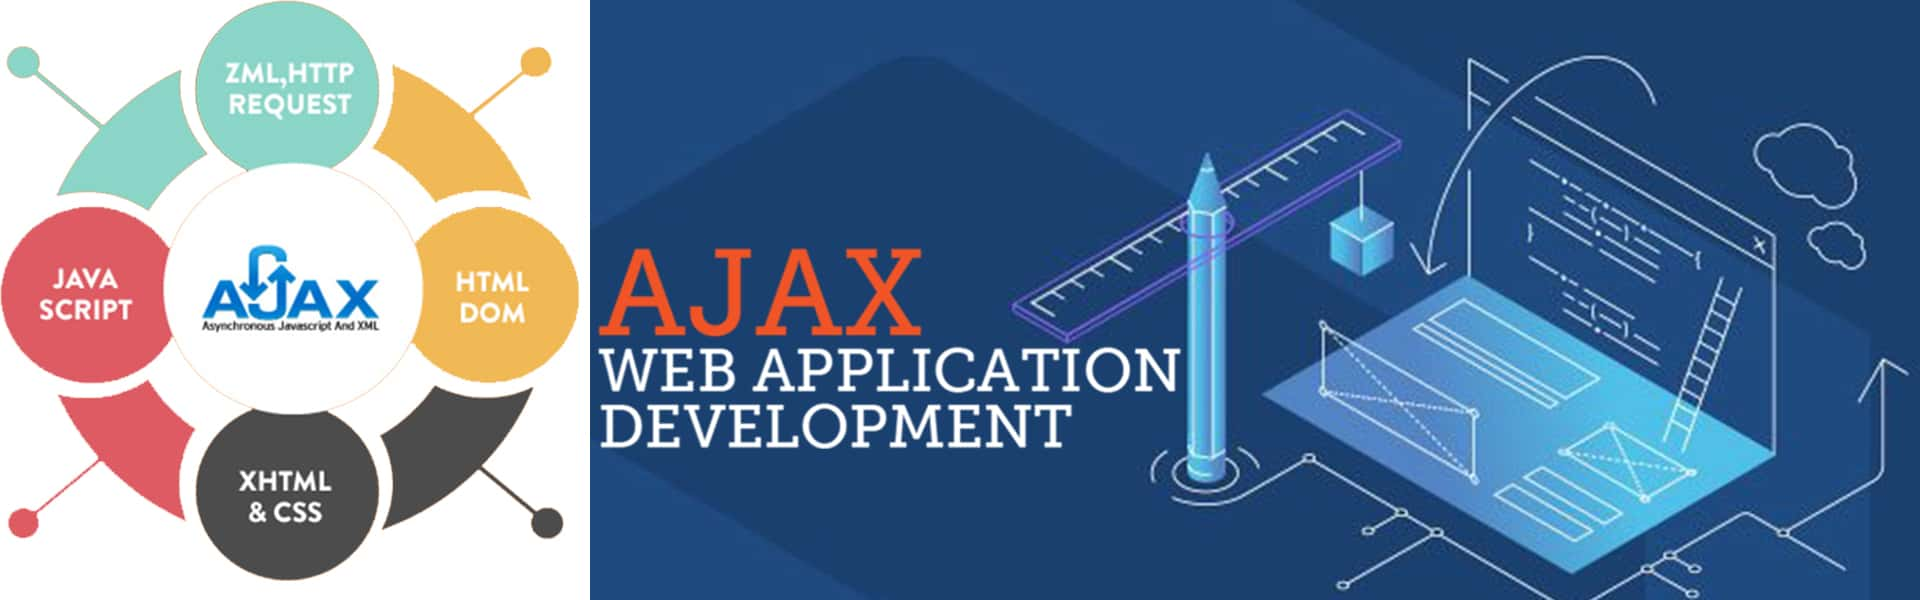 AJAX_DEVELOPMENT